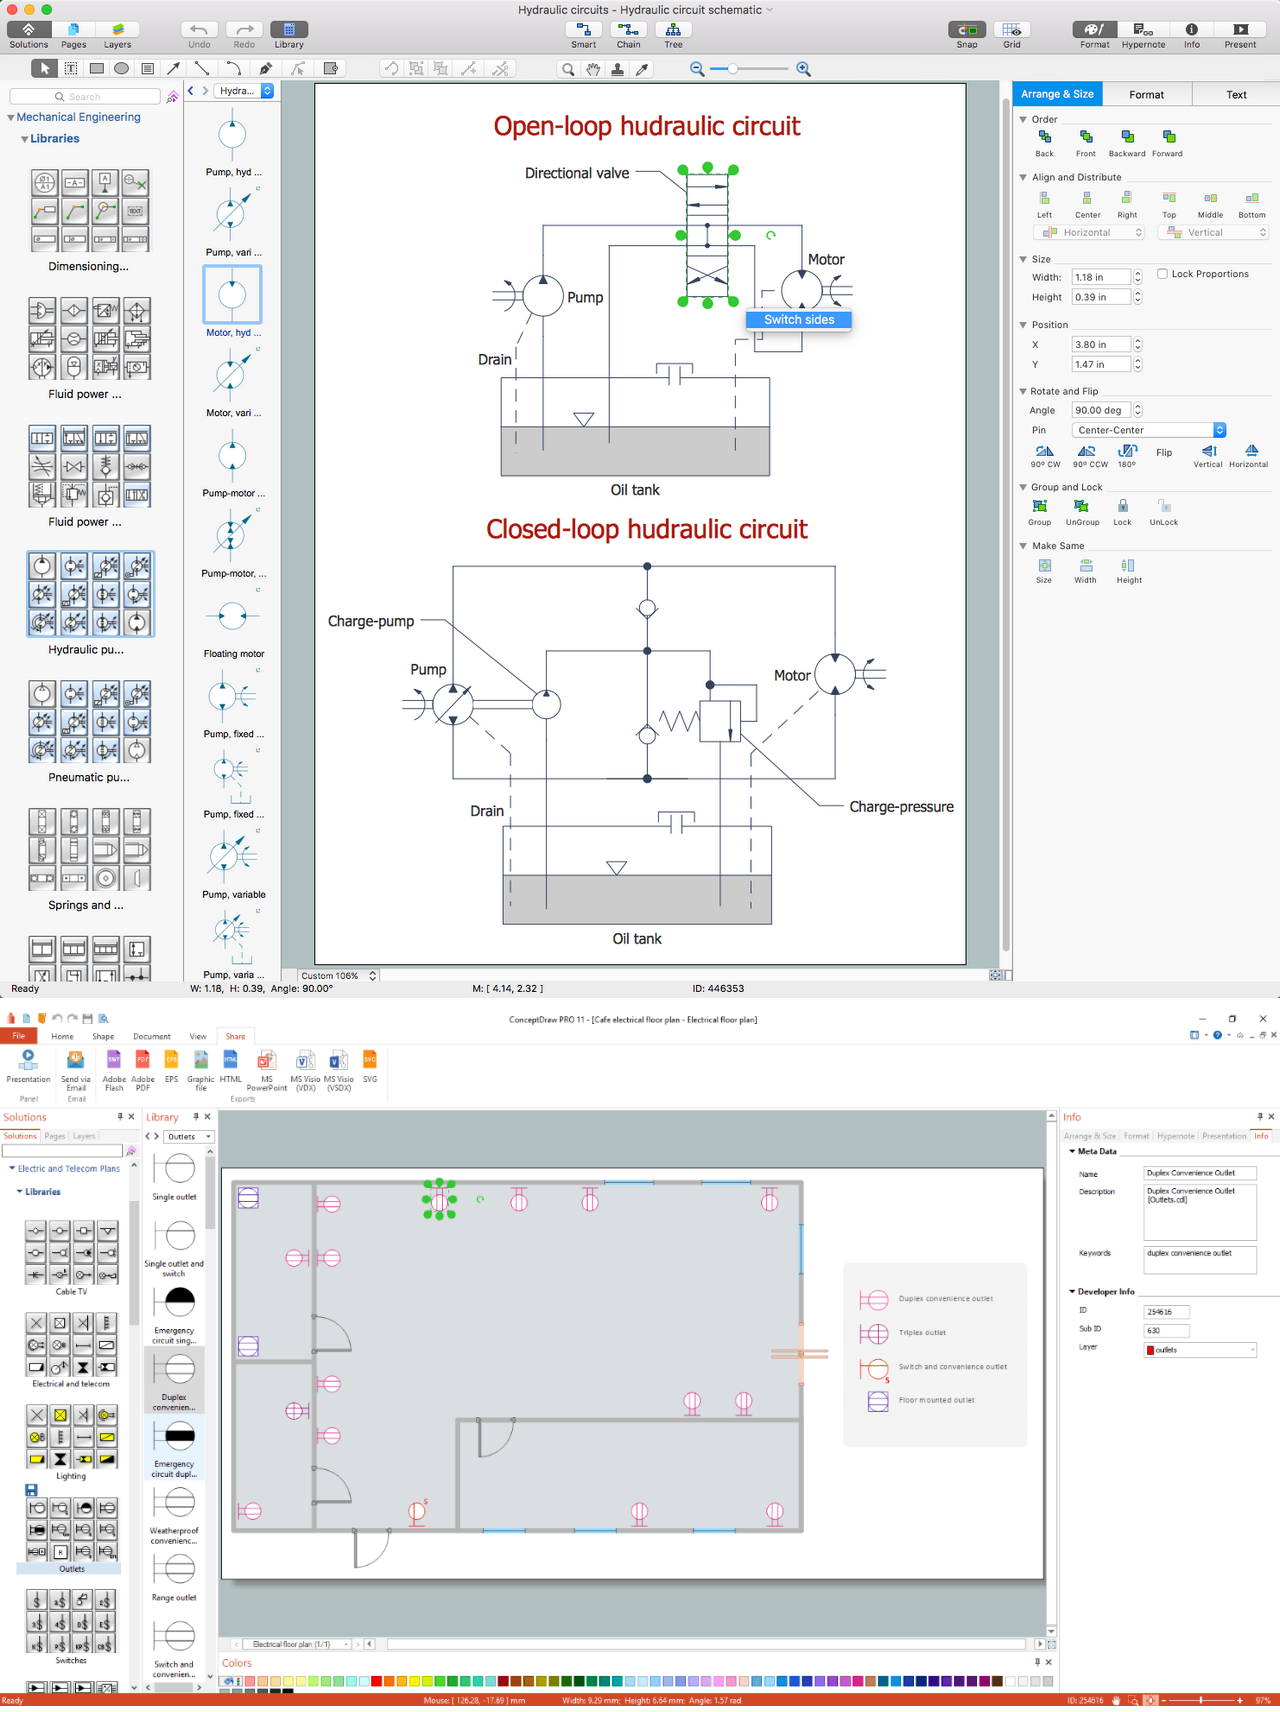 electrical diagram software create an electrical diagram easily rh conceptdraw com electric circuit diagram maker for kids electrical circuit diagram maker download